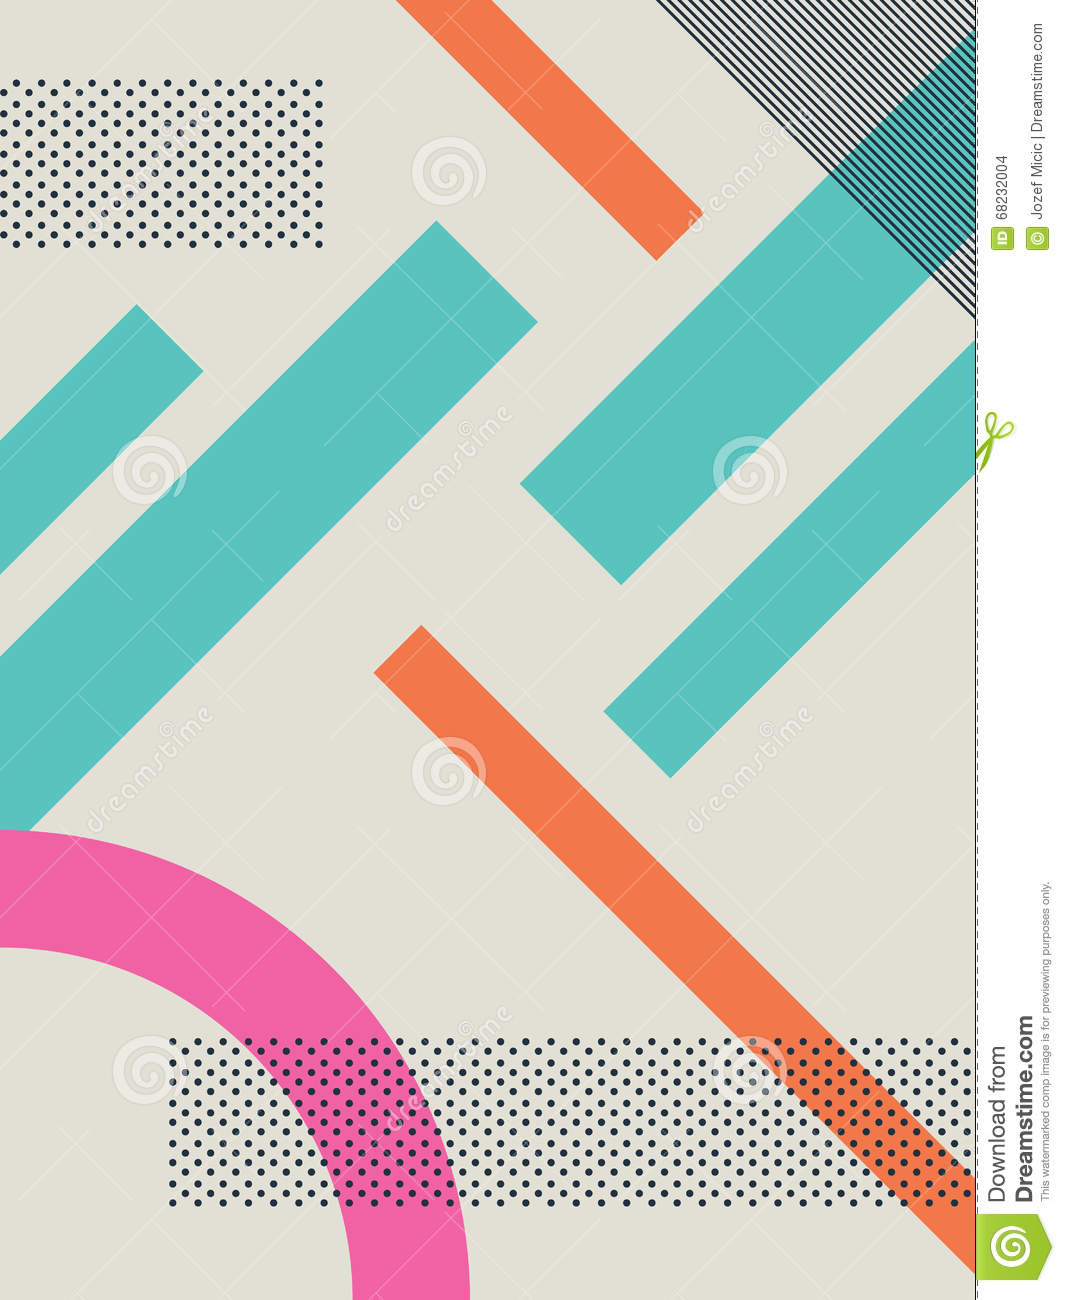 80s Design abstract retro 80s background with geometric shapes and pattern